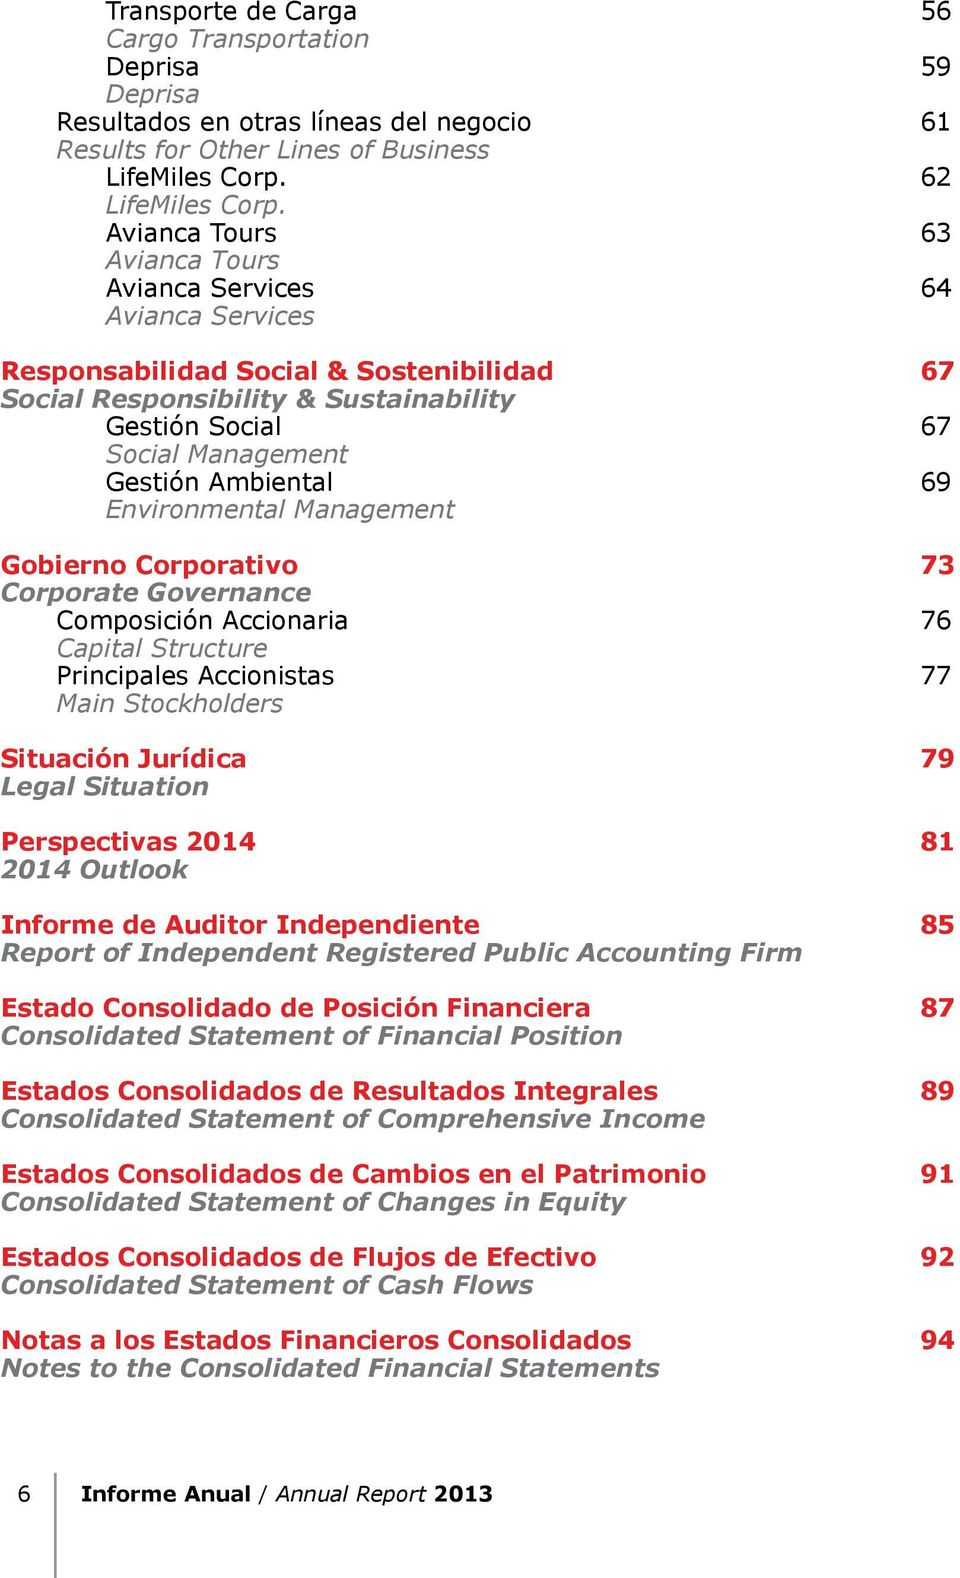 Ambiental 69 Environmental Management Gobierno Corporativo 73 Corporate Governance Composición Accionaria 76 Capital Structure Principales Accionistas 77 Main Stockholders Situación Jurídica 79 Legal